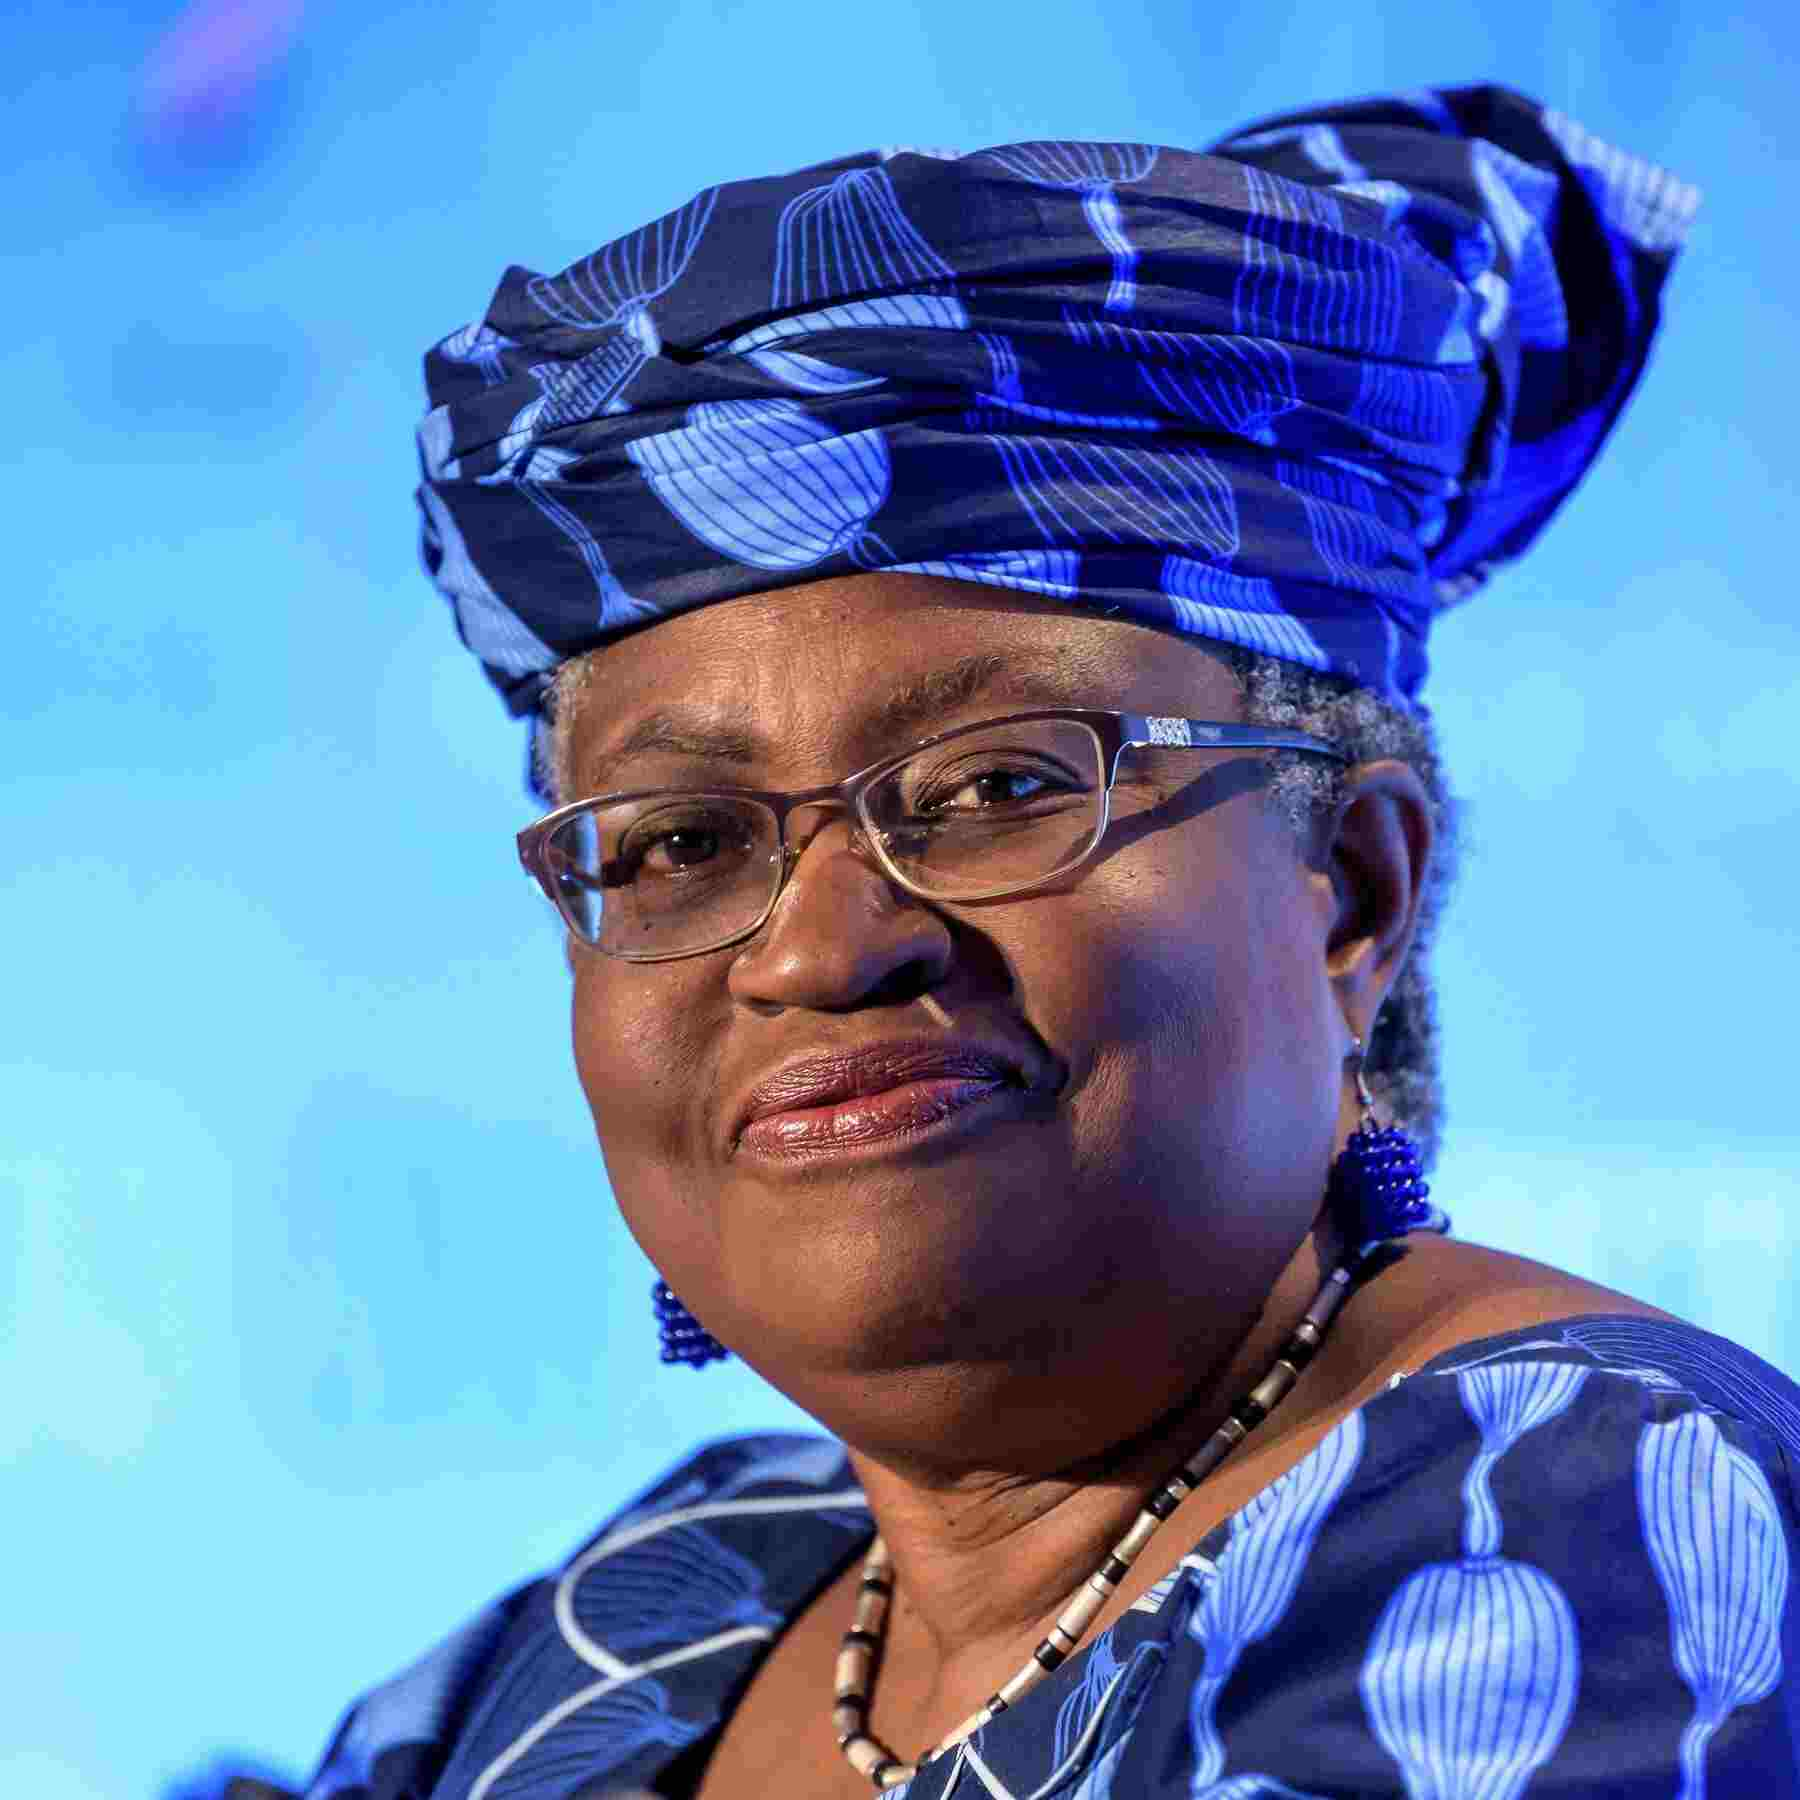 """Okonjo Iweala is the rudest woman I've ever met"" - Writer expresses resentment"